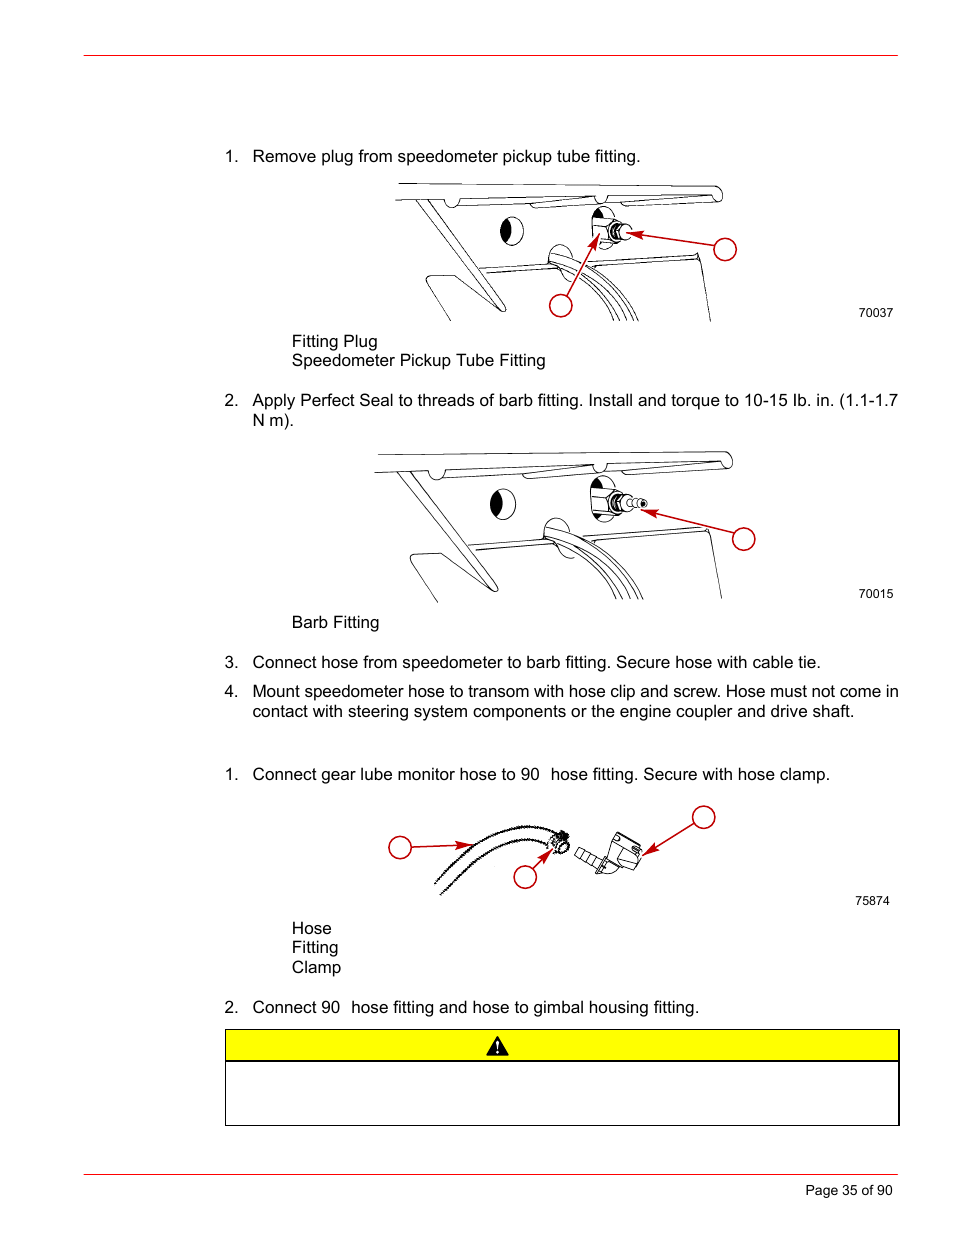 Speedometer pickup, Drive unit gear lube monitor hose, Caution | Mercury  INSTALLATION MANUAL D7.3L D-TRONIC User Manual | Page 35 / 90